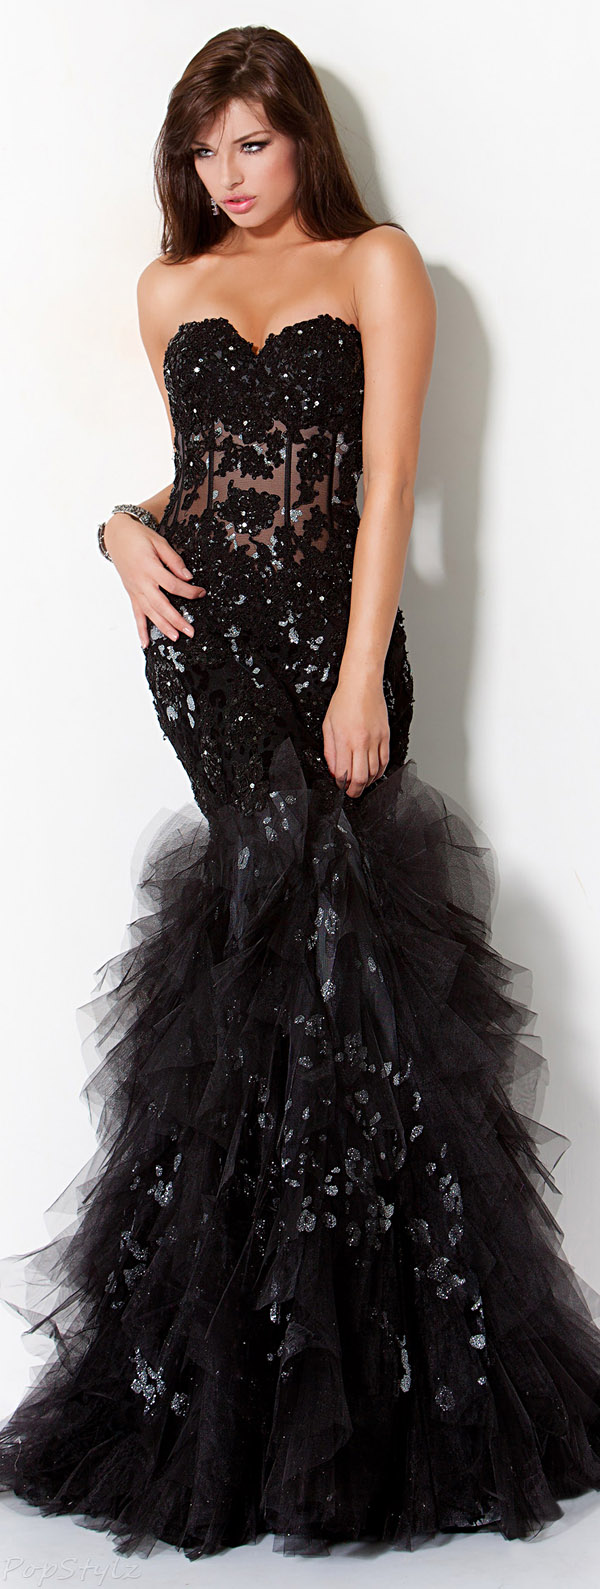 Jovani 172008 Ruffles & Lace Strapless Evening Gown